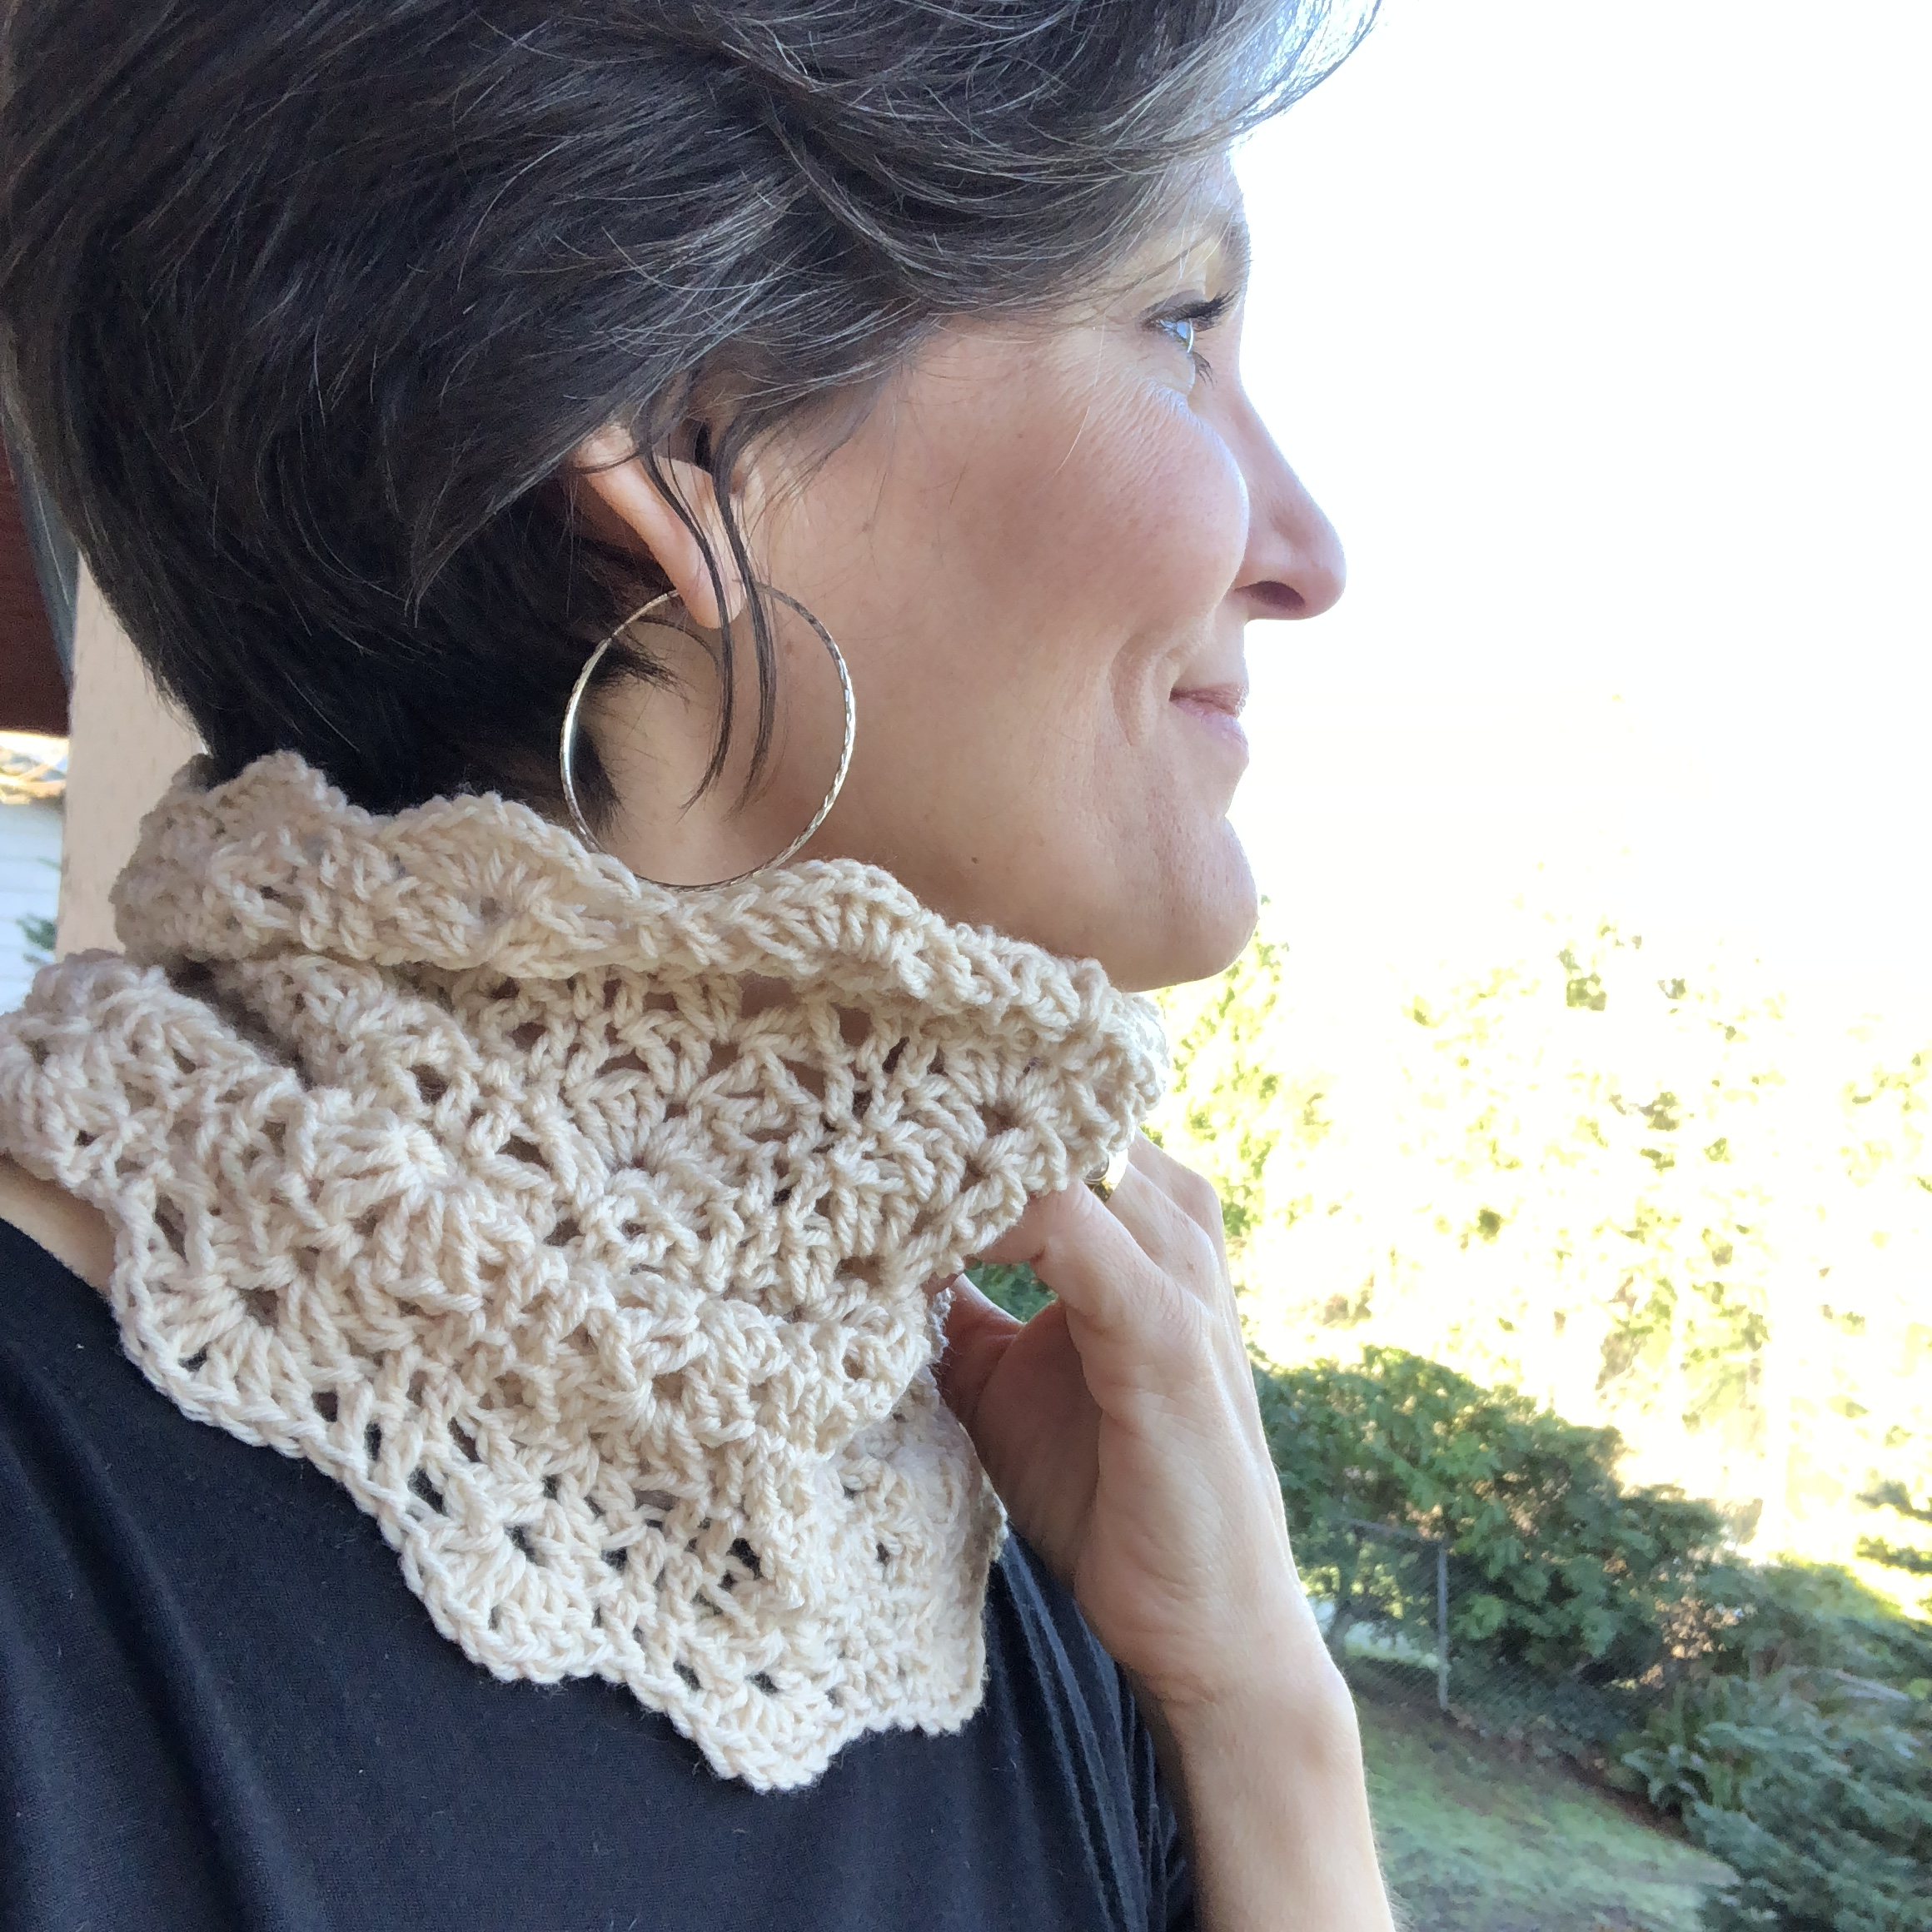 The Cardiff Cowl crochet pattern by LionBrand